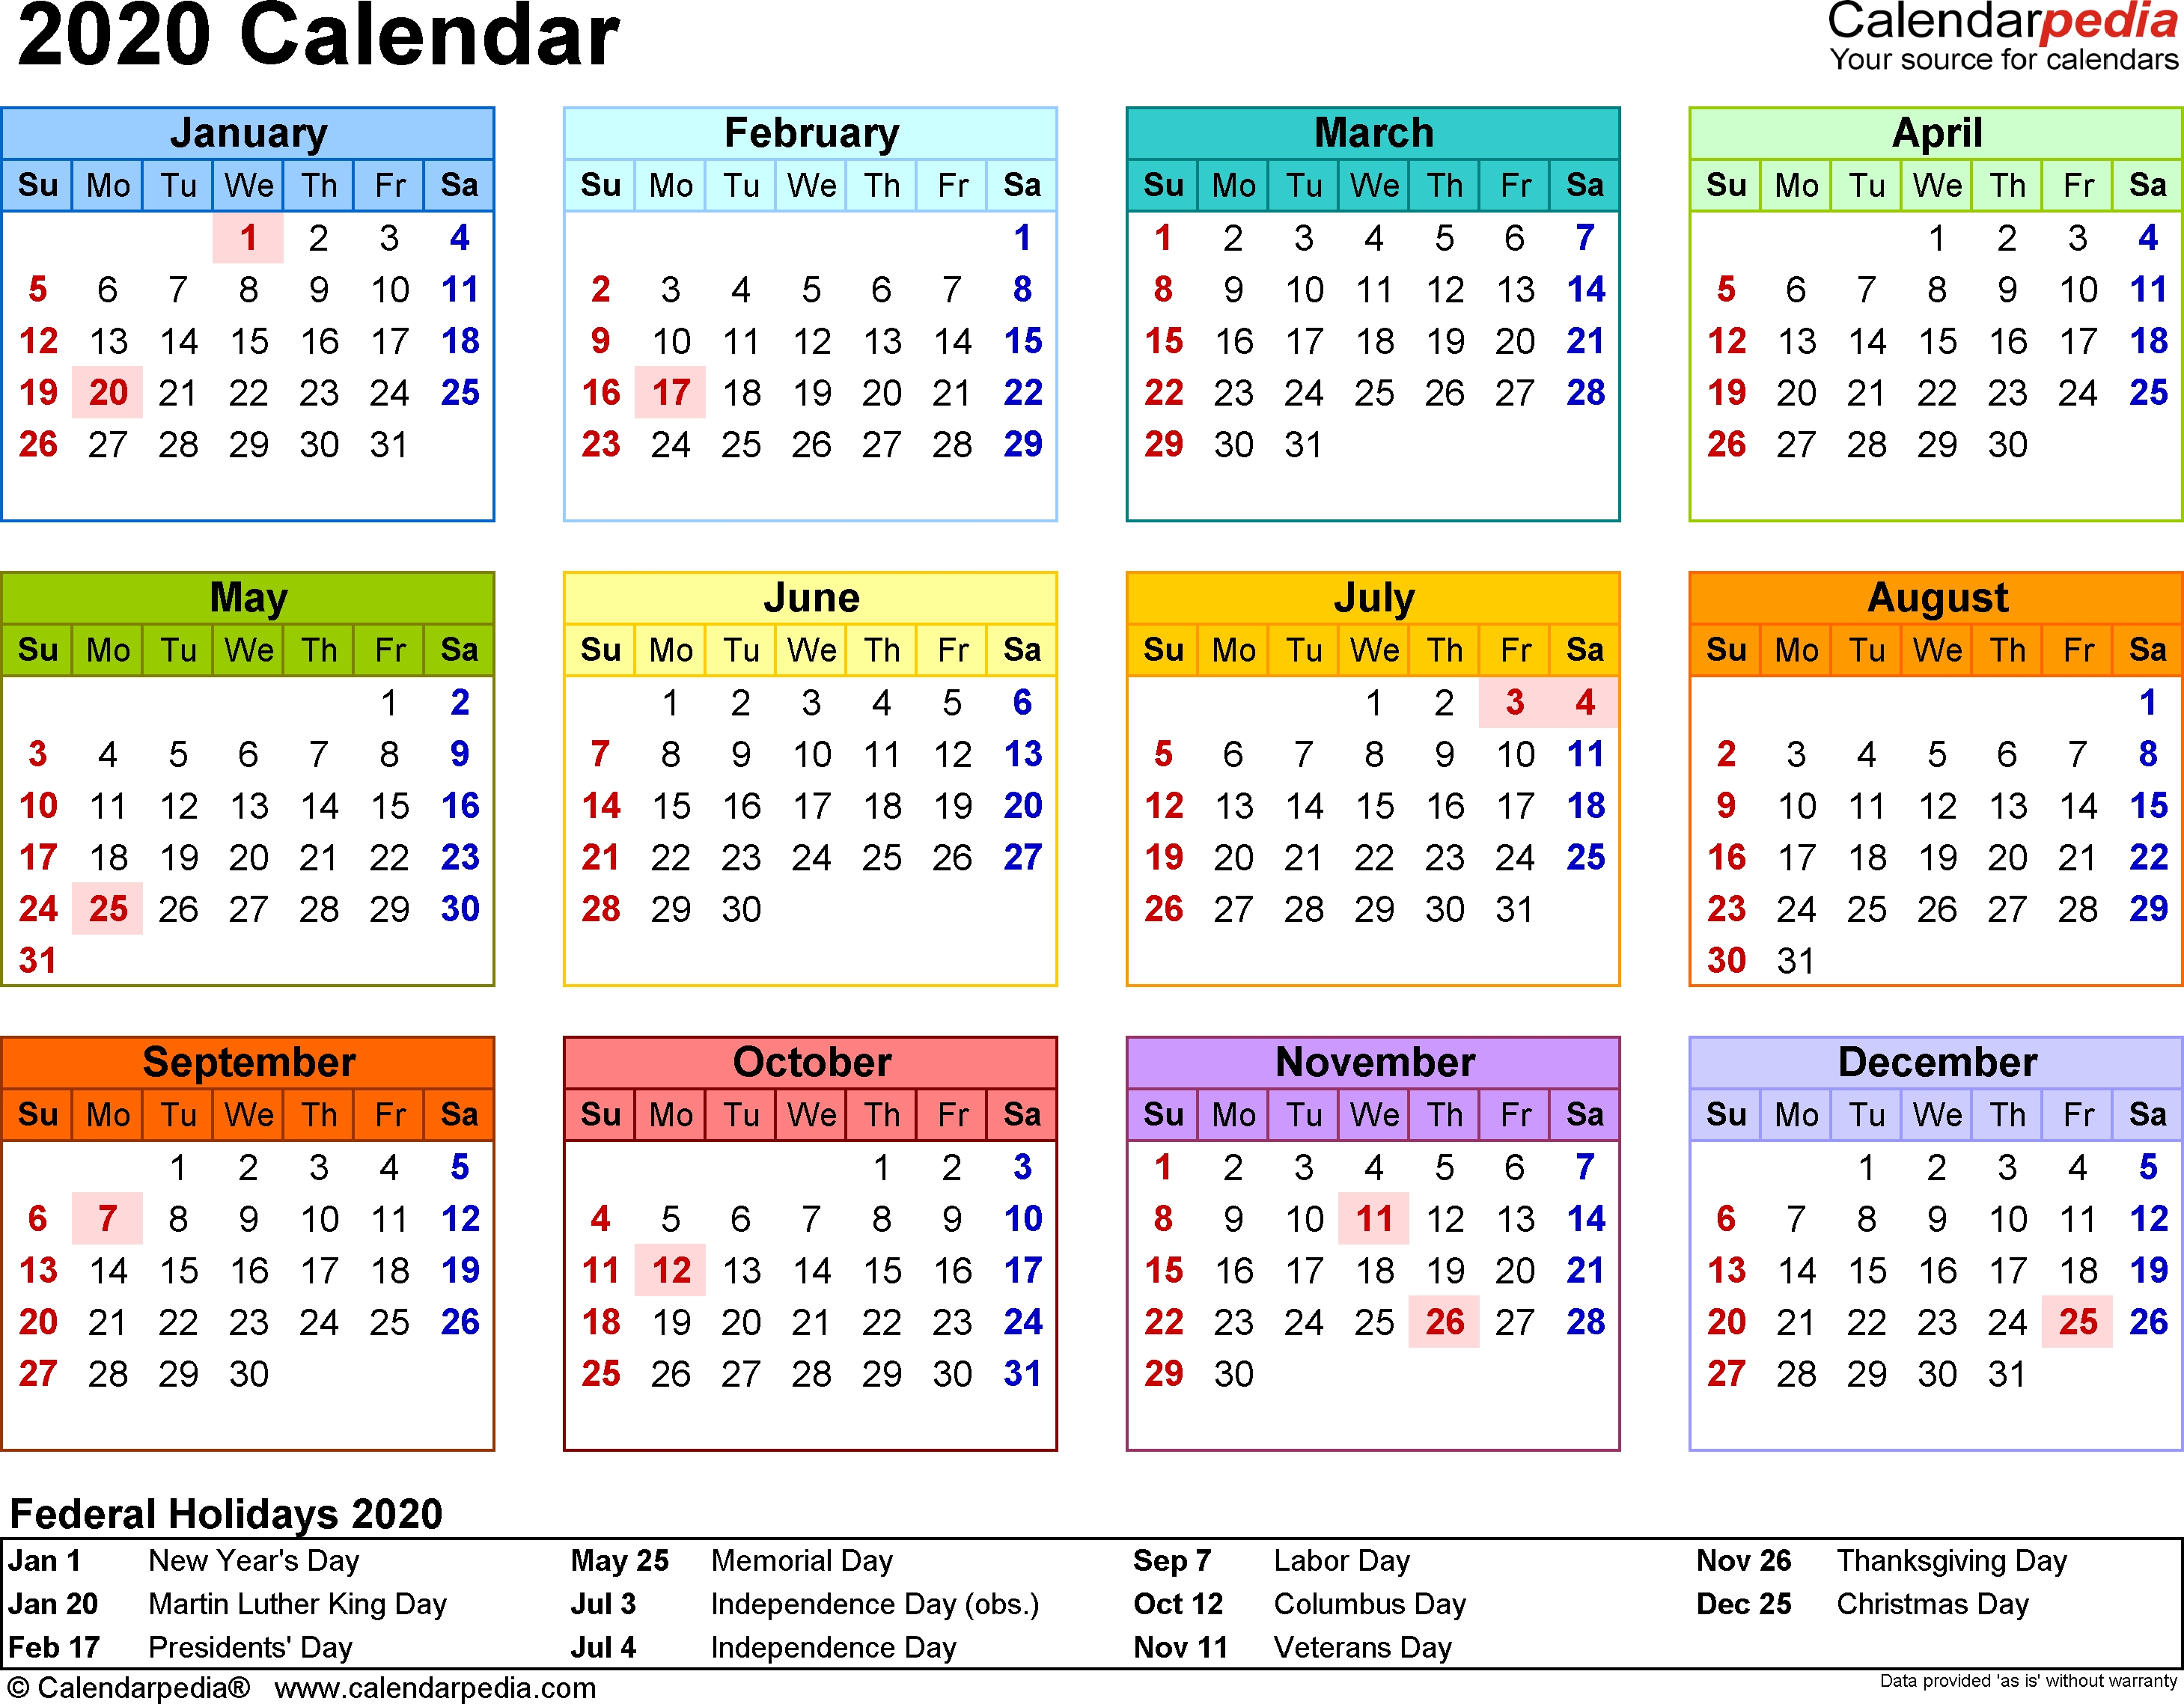 2020 Calendar - Download 17 Free Printable Excel Templates (.xlsx)_School Calendar 2020 South Africa